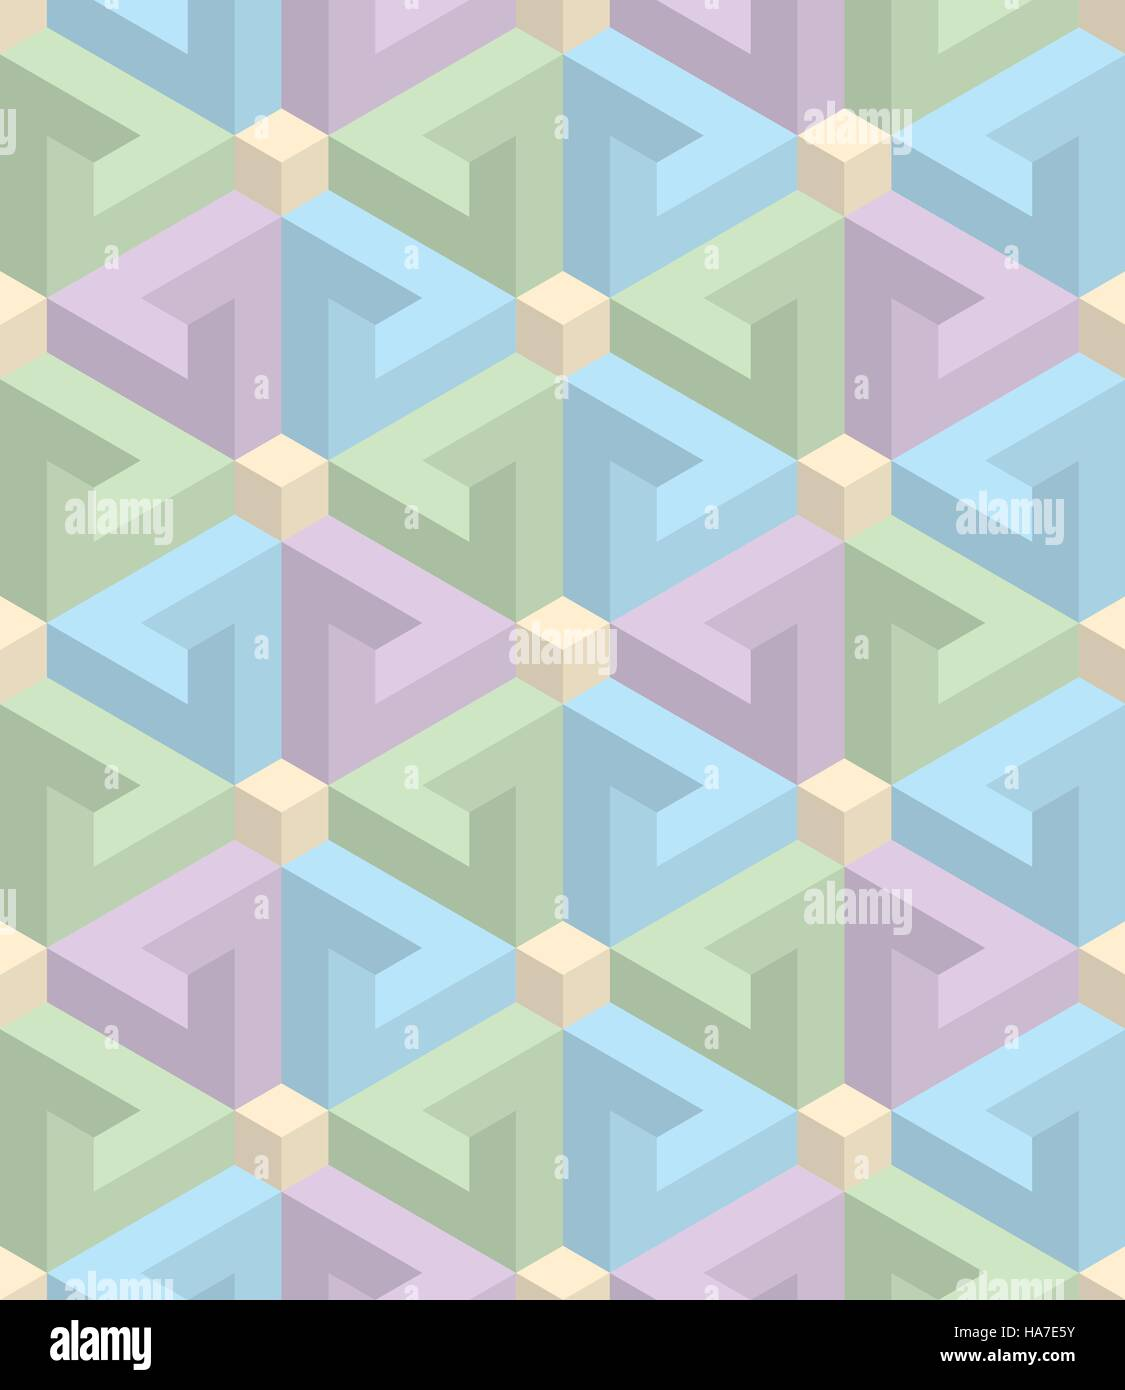 Pastel Shades isometric seamless pattern in pastel shades. 3d optical illusion